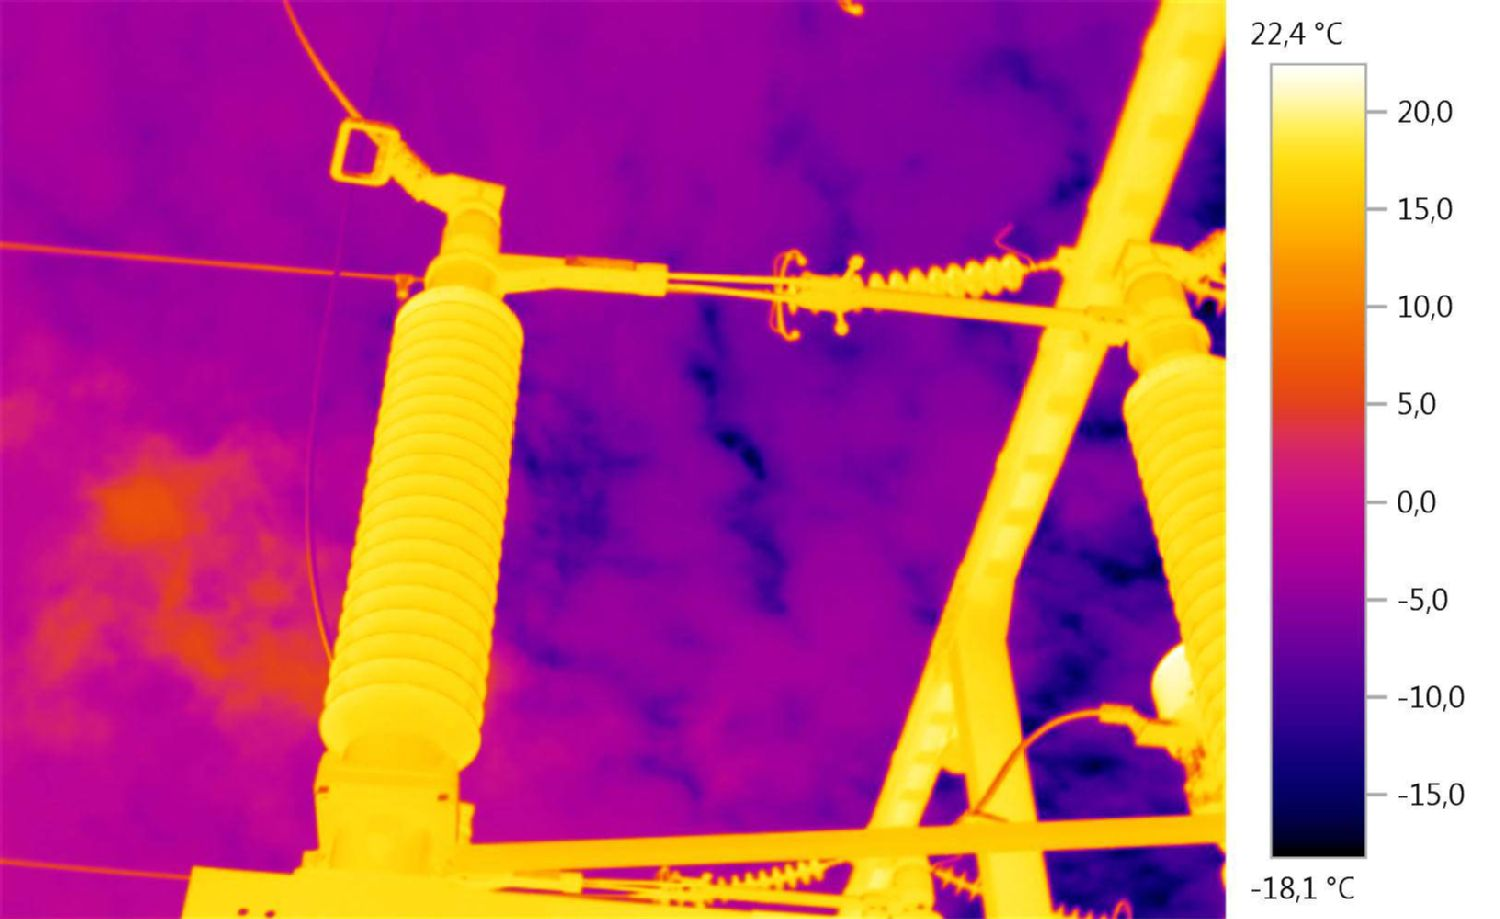 Thermal image of an overhead power line